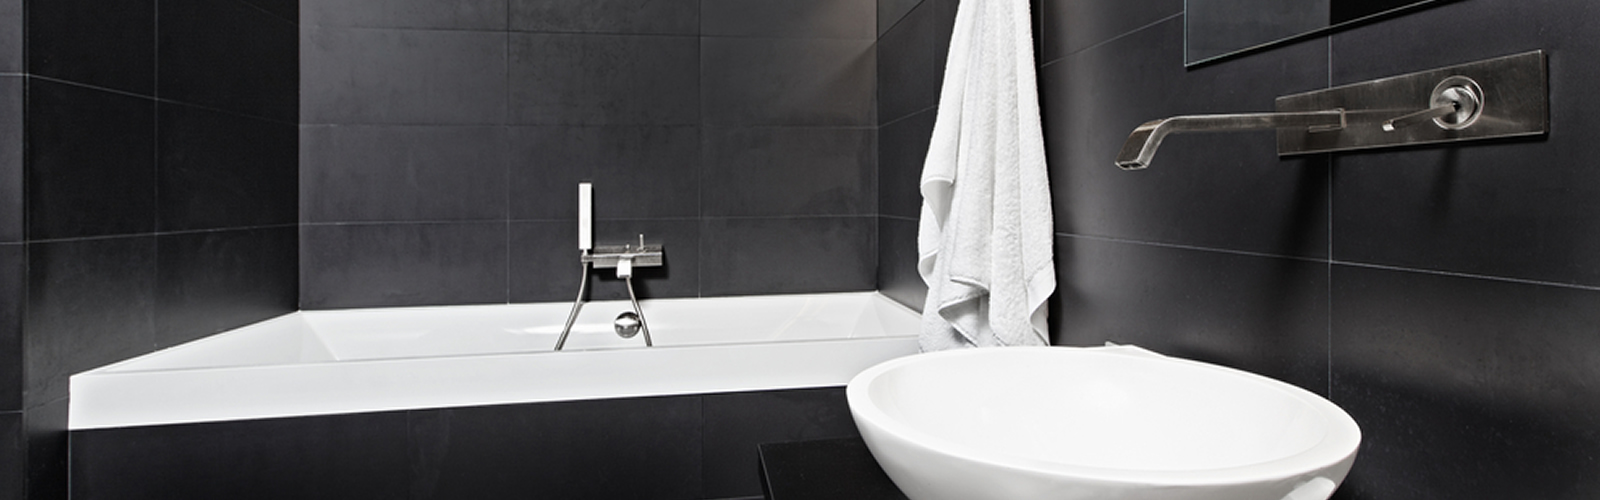 What to Look For in a Bathroom Fitter